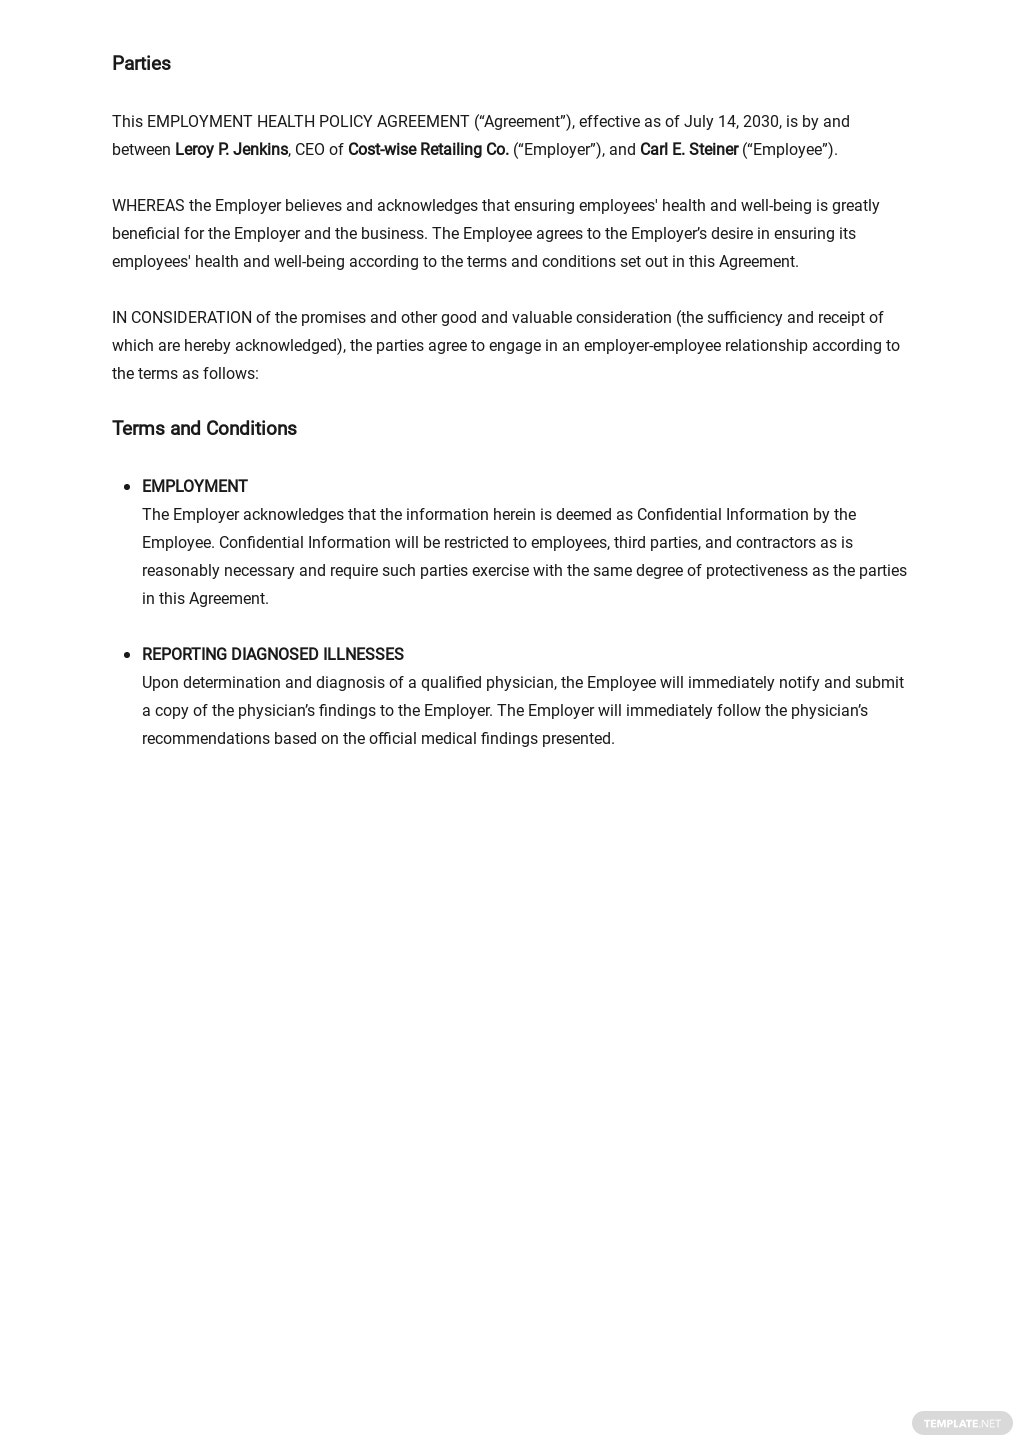 Employee Health Policy Agreement Template 1.jpe